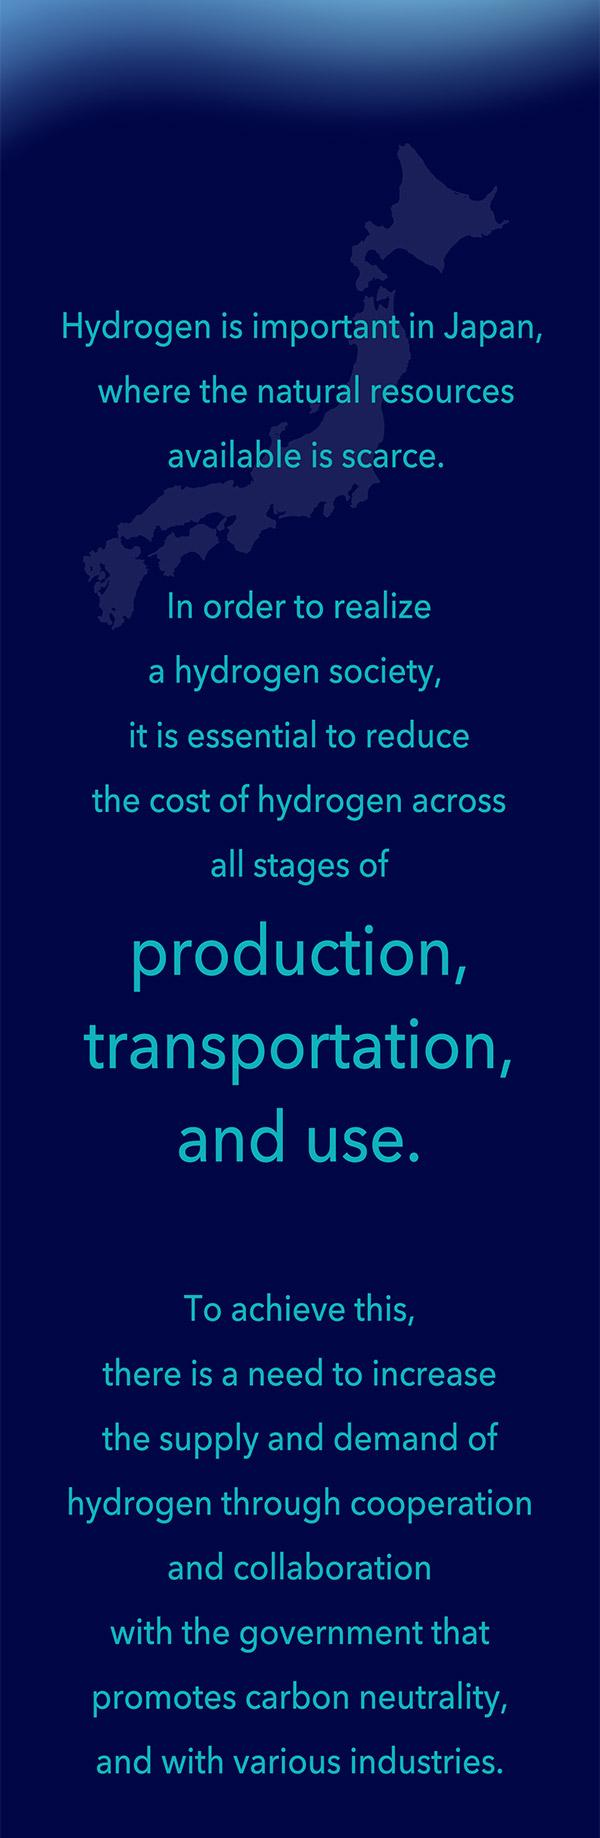 In order to realize a hydrogen society, it is essential to reduce the cost of hydrogen across all stages of production, transportation, and use. To achieve this, cooperation and collaboration among the government and various industries is needed.